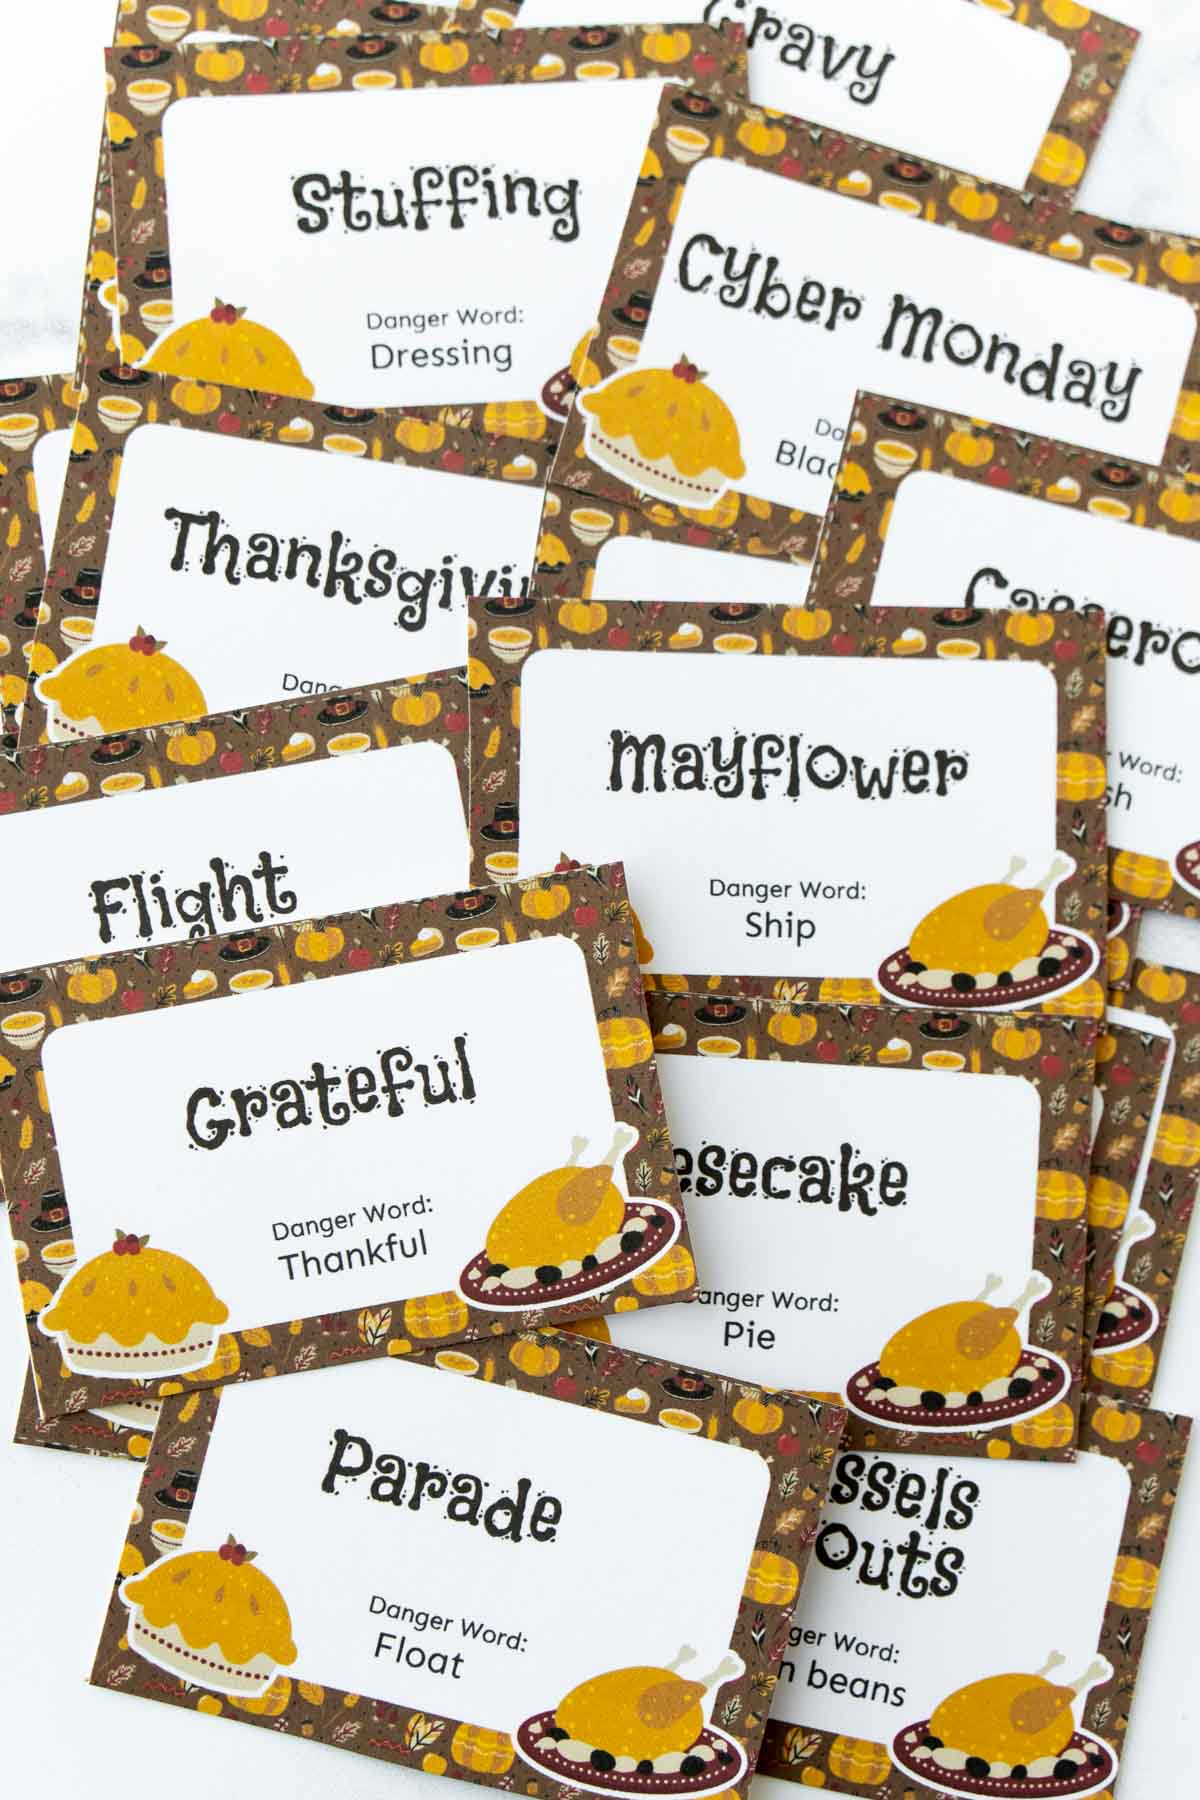 Thanksgiving danger word cards cut out and put in a pile